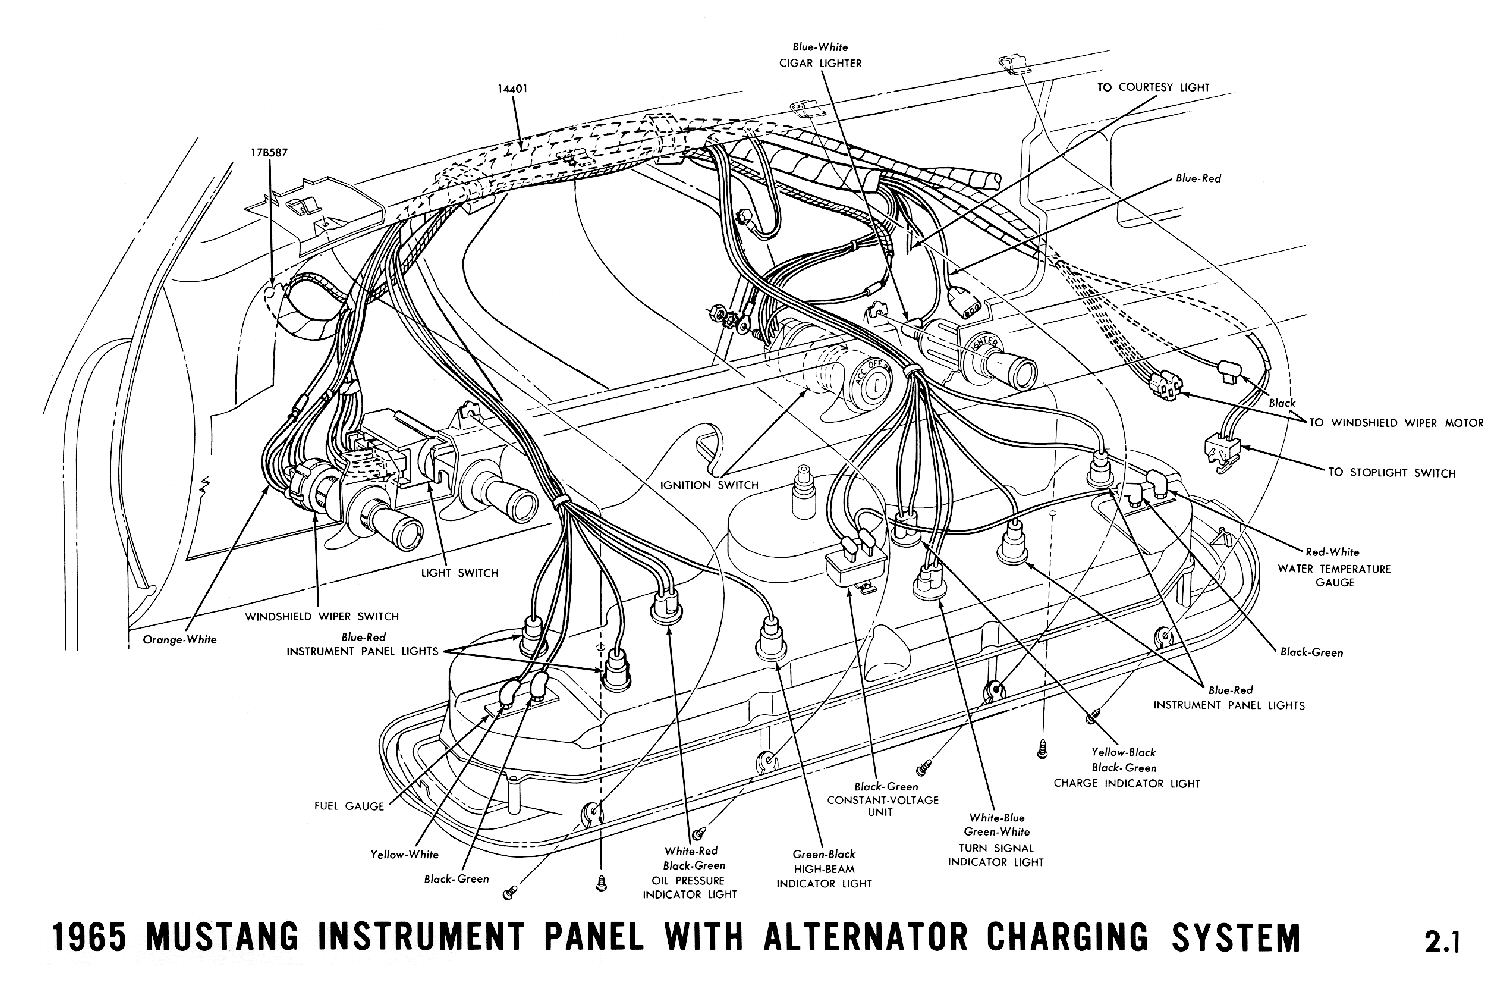 1965 mustang wiring diagrams average joe restoration rh averagejoerestoration com 1966 Mustang Alternator Wiring 1964 Mustang Alternator Wiring Diagrams